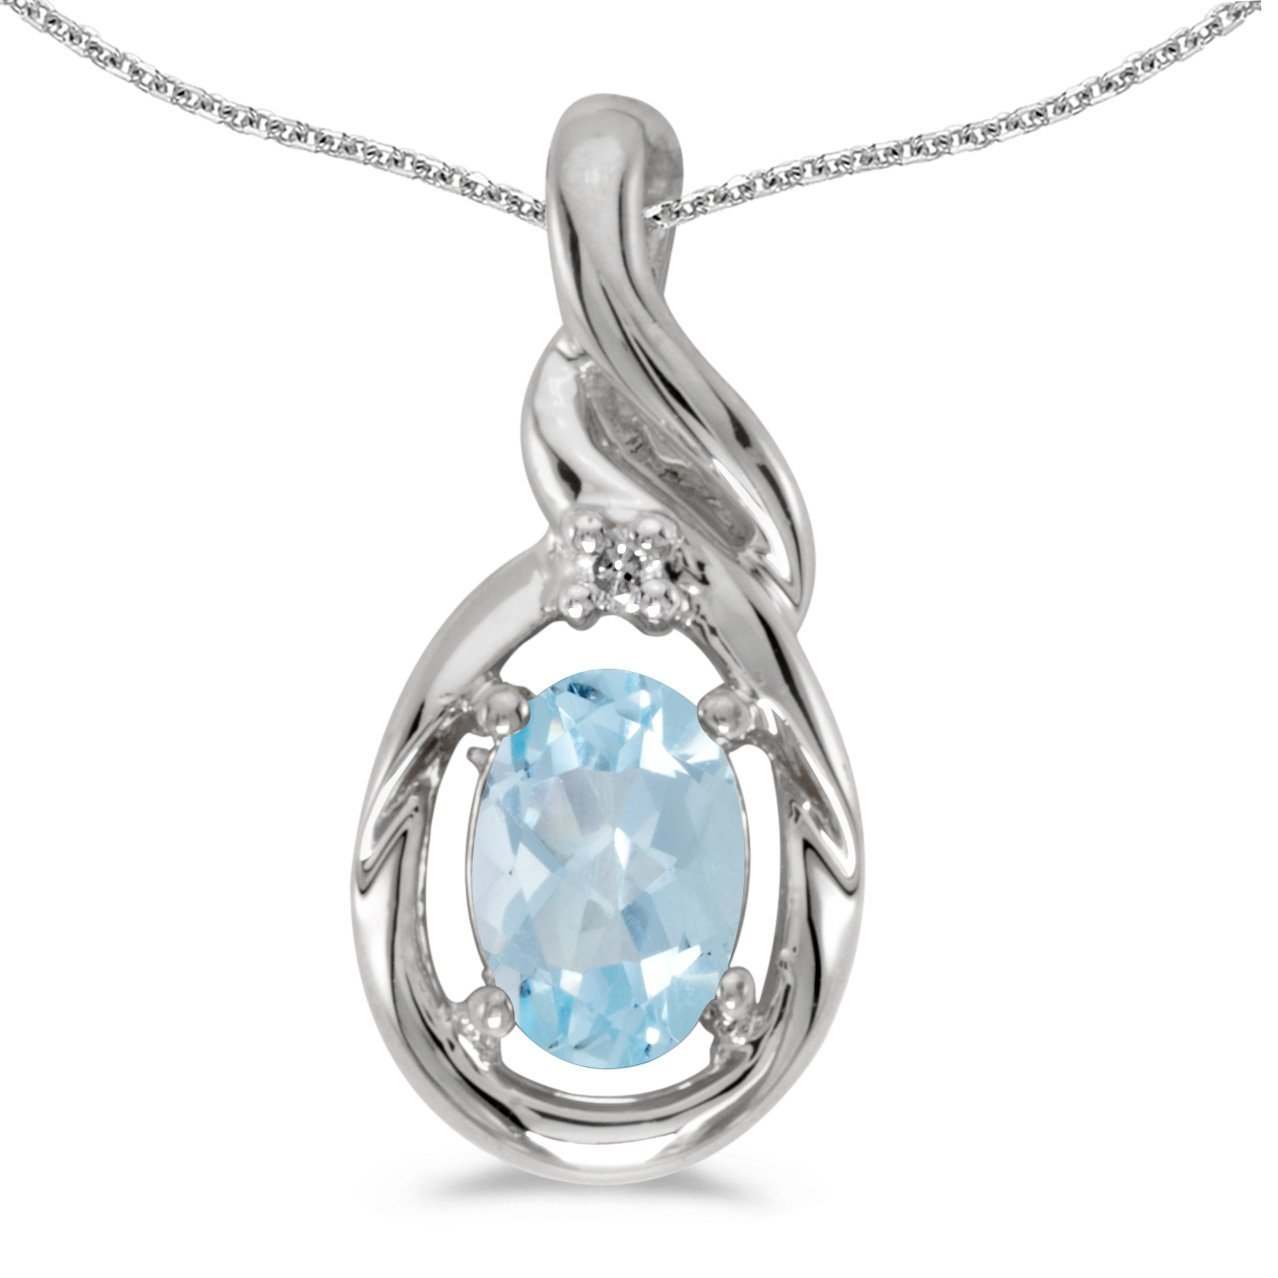 0.47 Cttw. FB Jewels Solid 10k White Gold Genuine Birthstone Oval Gemstone And Diamond Pendant